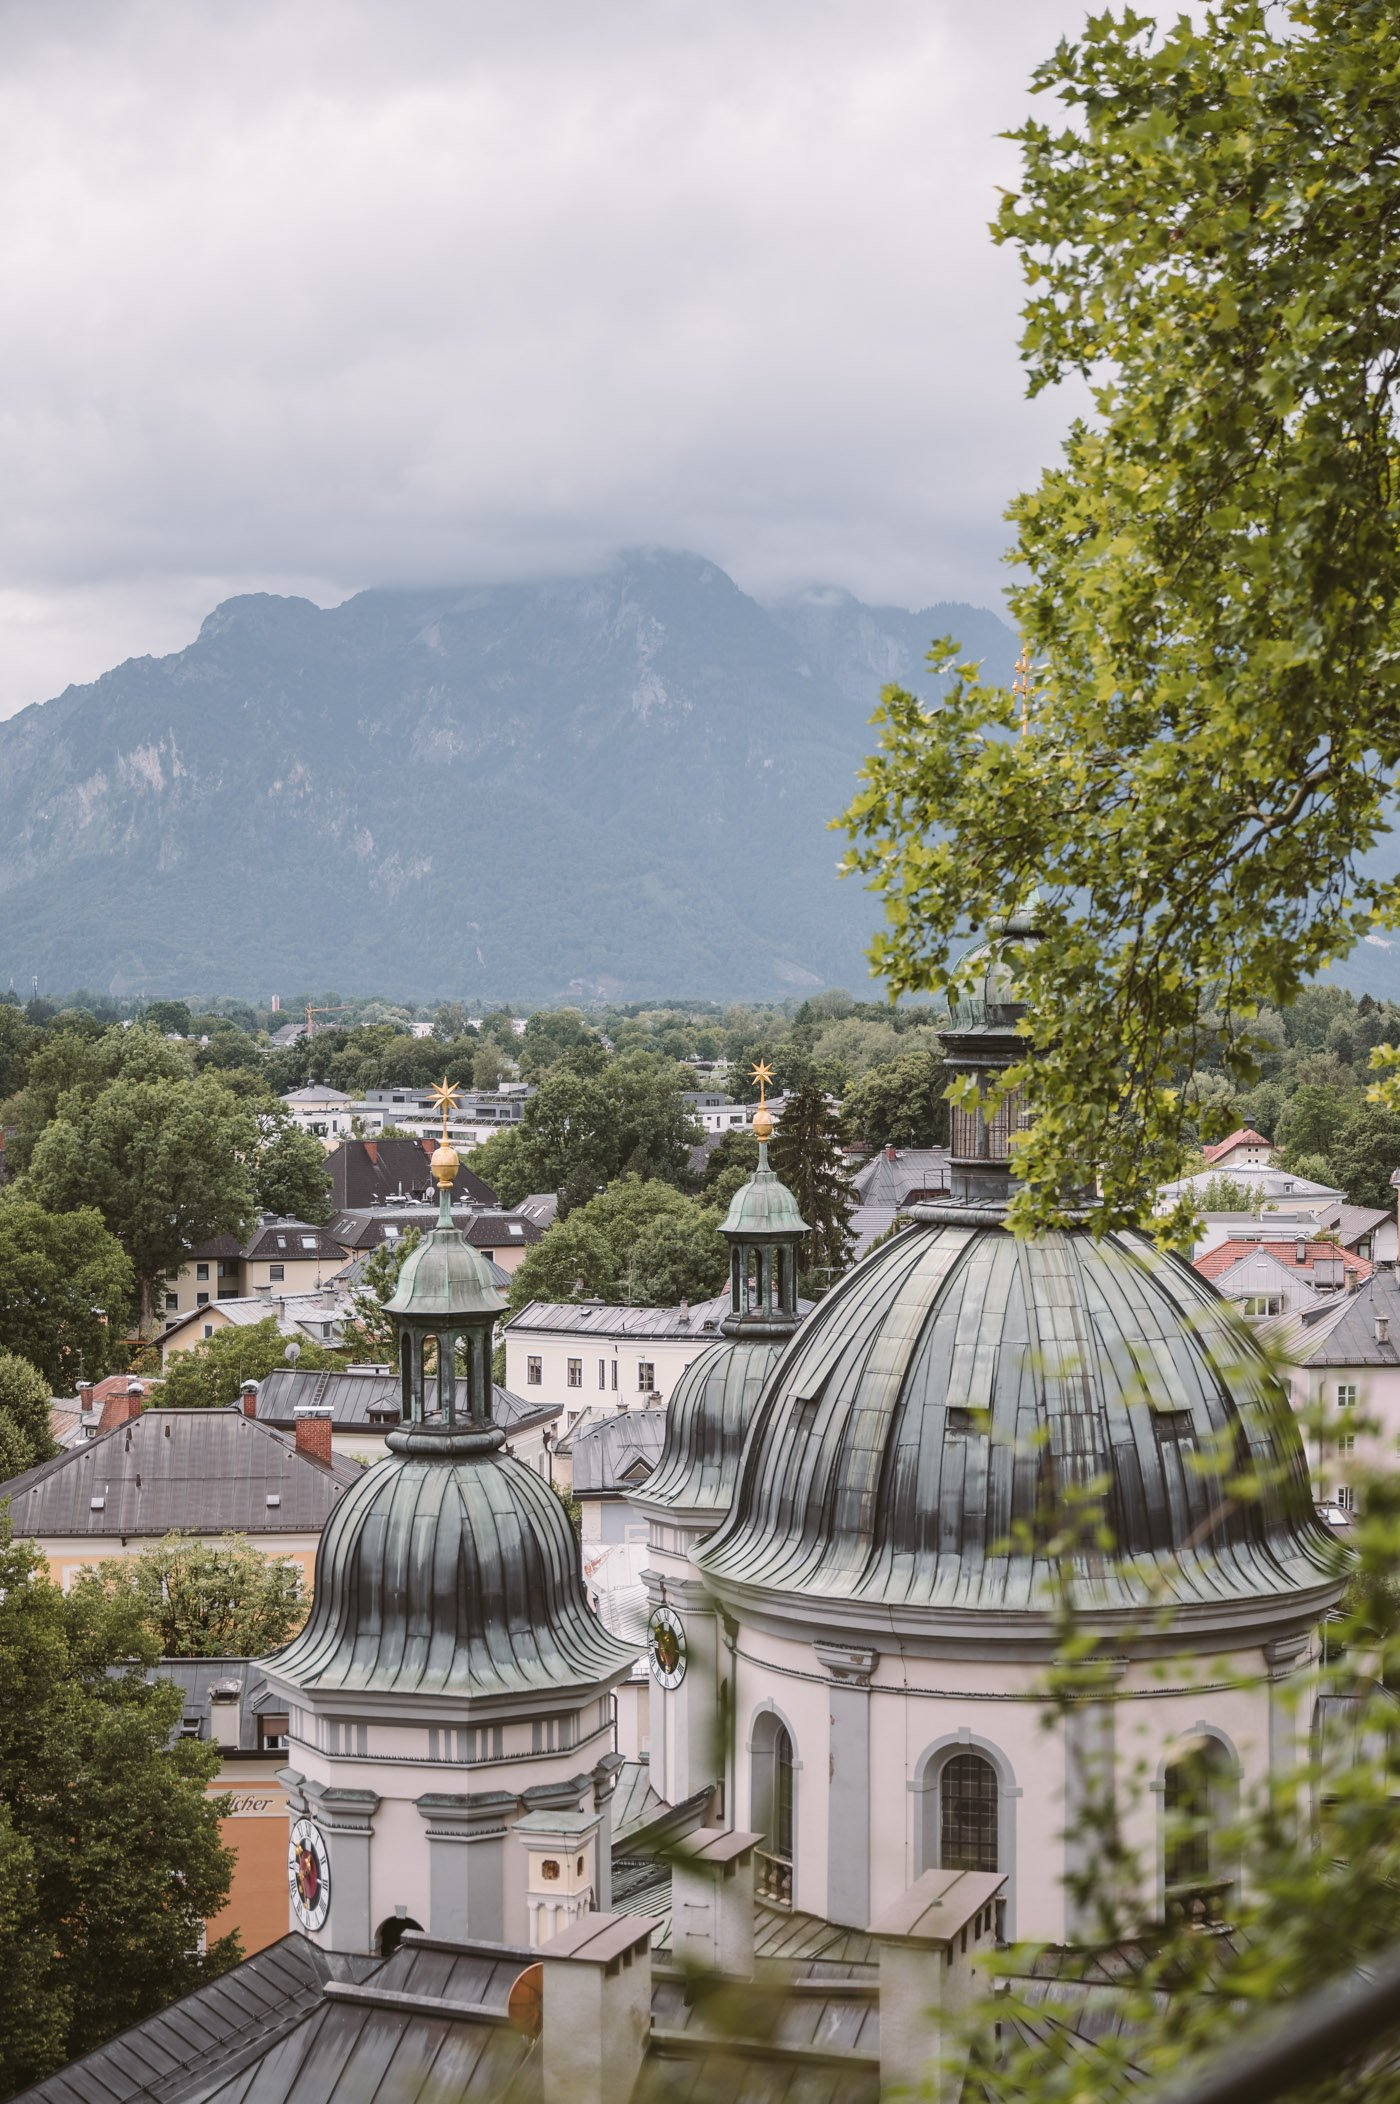 Views of Nonntal Salzburg